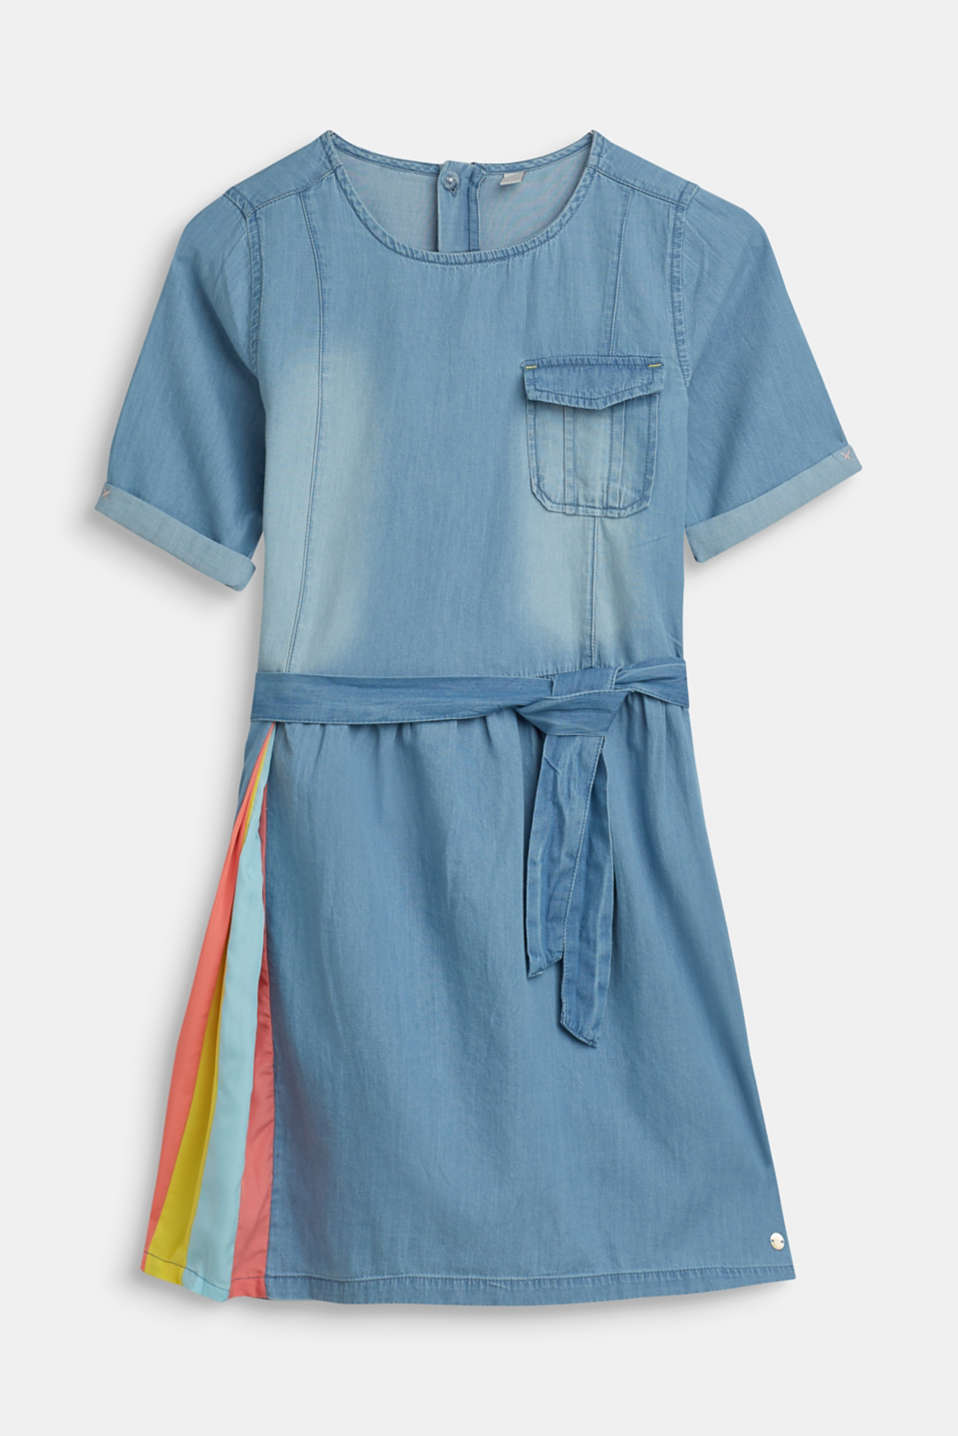 Esprit - Denim dress with a striped insert, 100% cotton